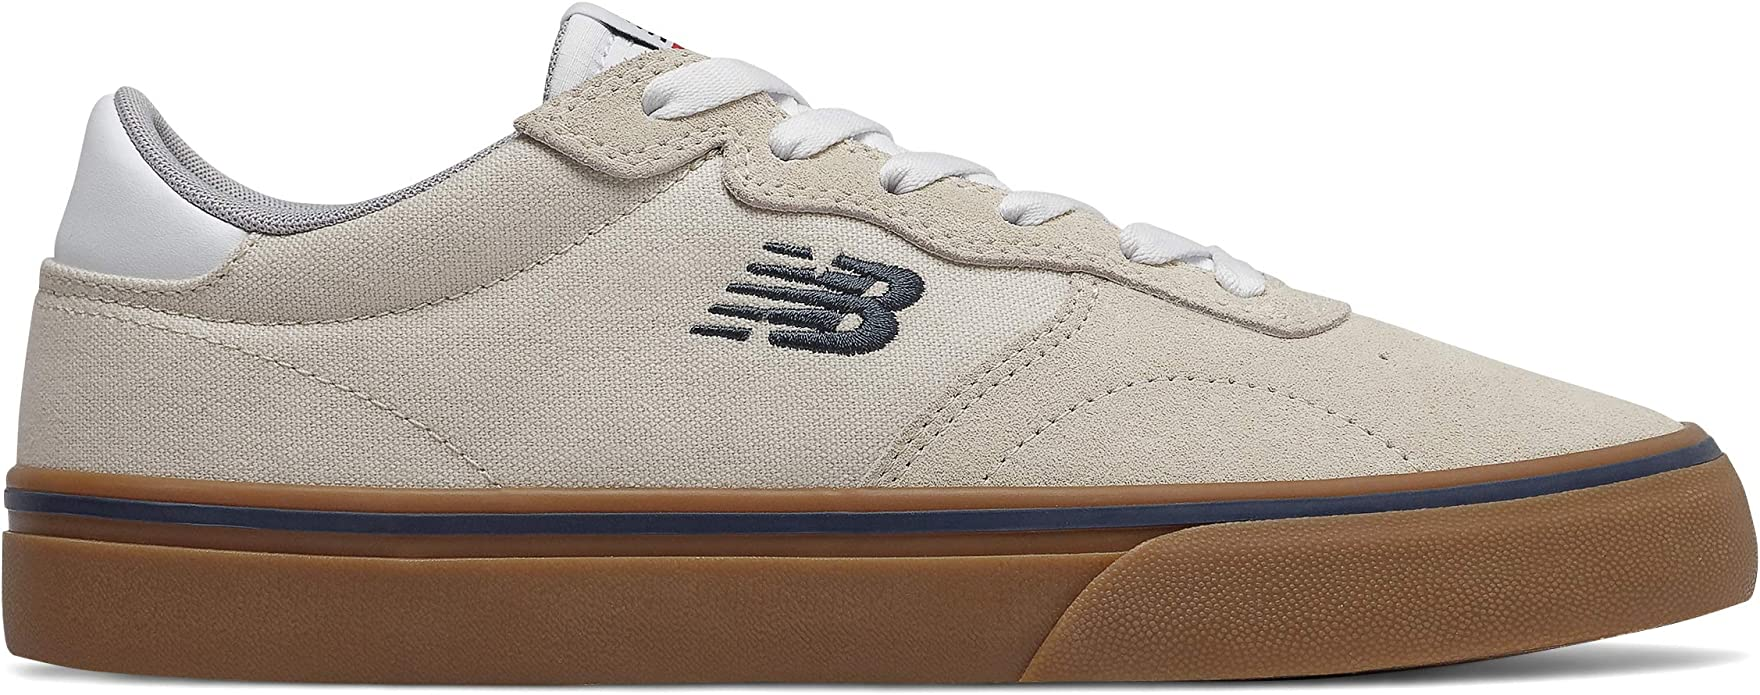 New Balance All Coasts AM232 Sneakers Skateschuhe Damen Herren Unisex Beige/Gummi